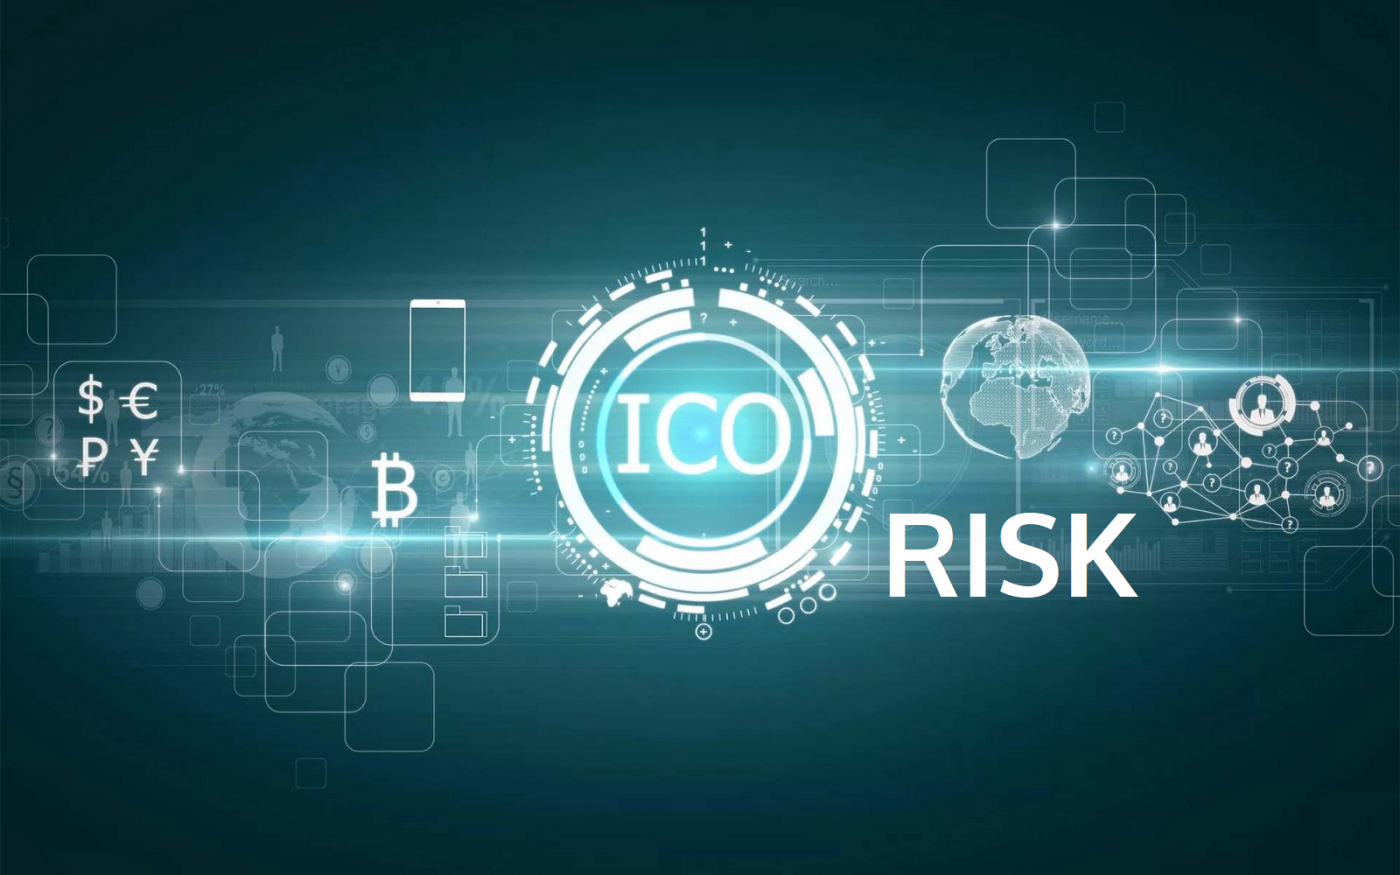 Invest Smartly in ICO: ICO Risks That You Need To Know